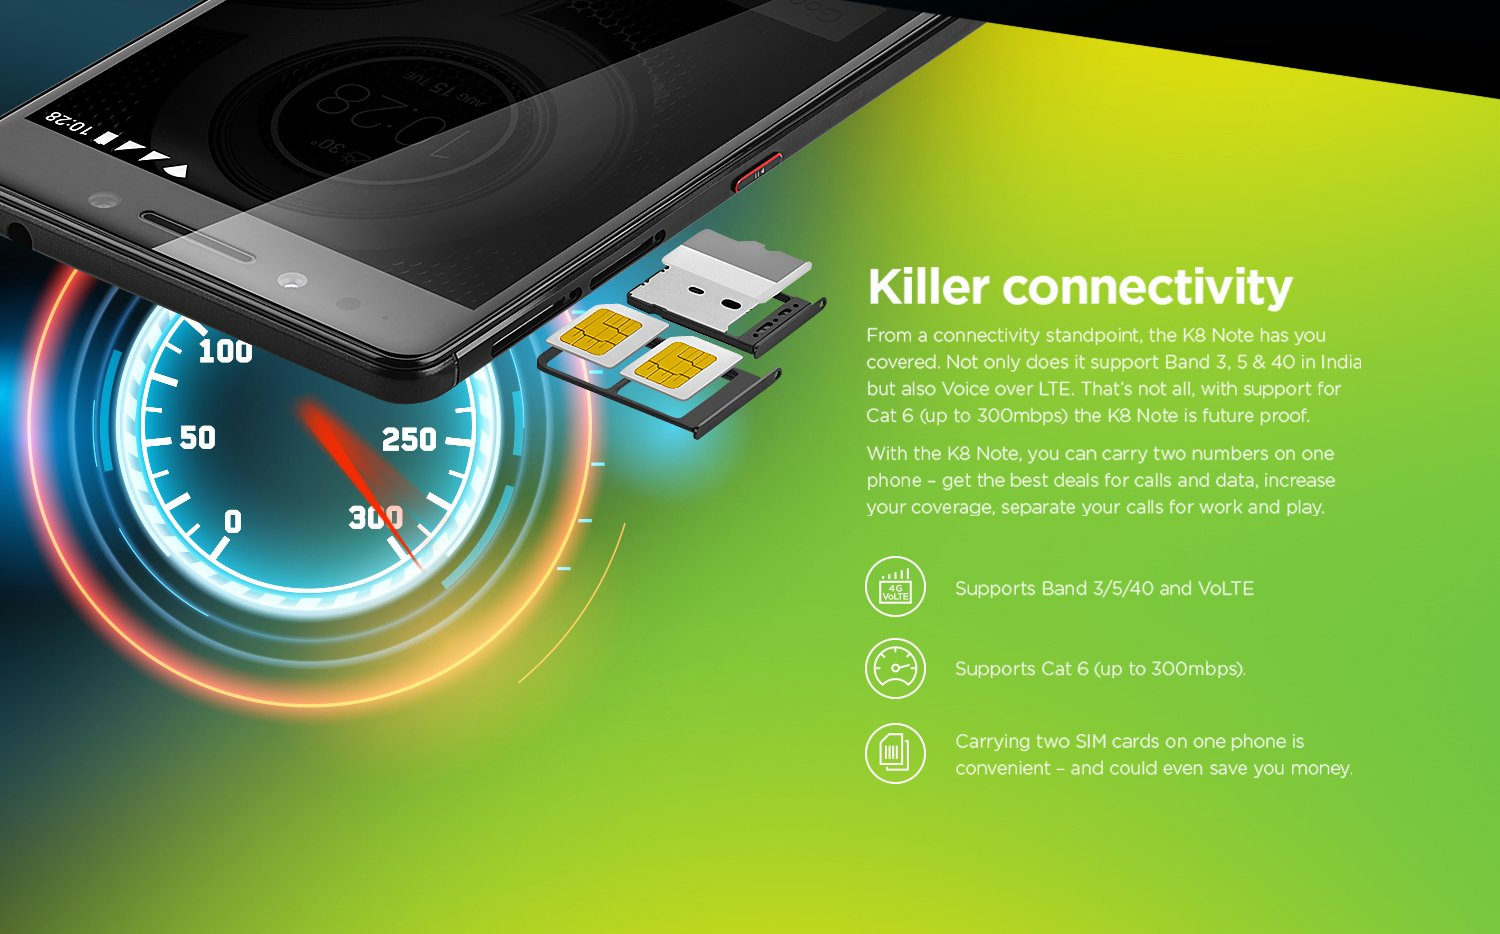 Killer connectivity